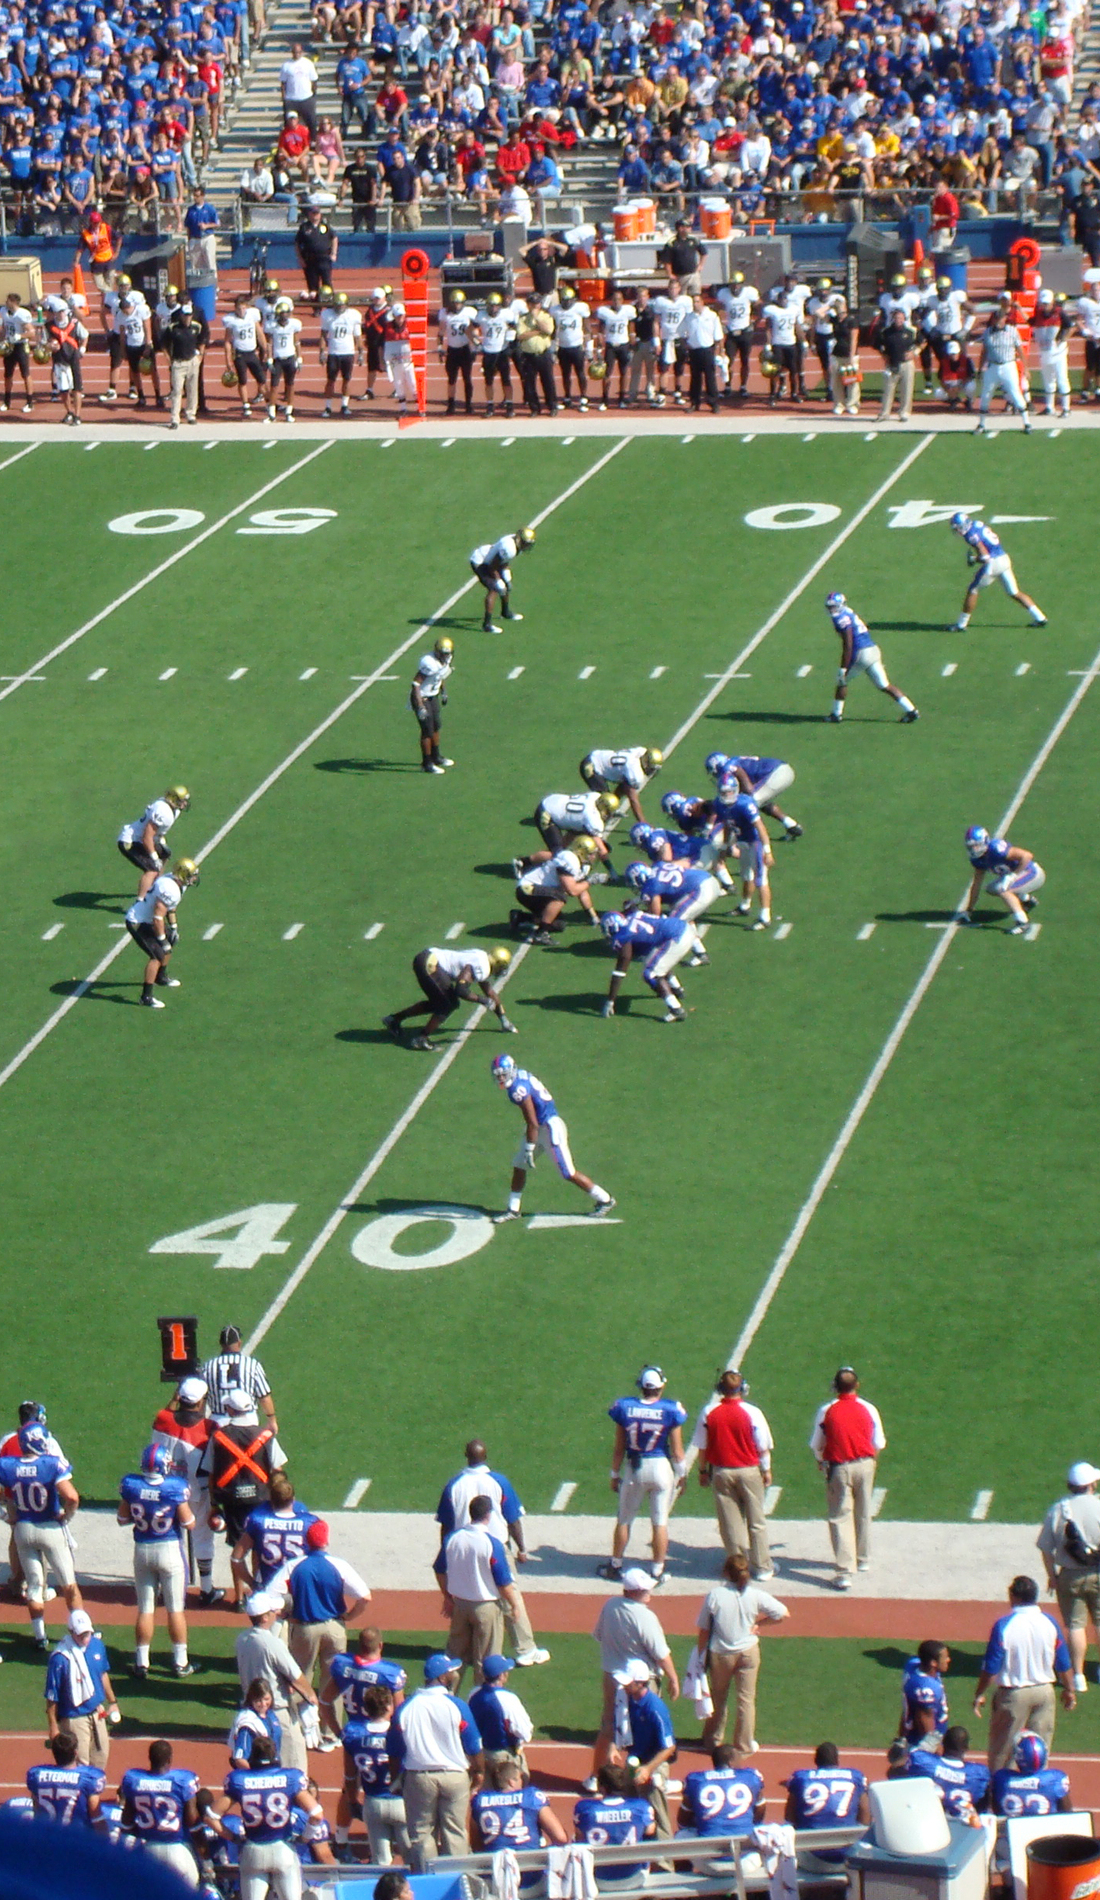 A Kansas Jayhawks Football live event